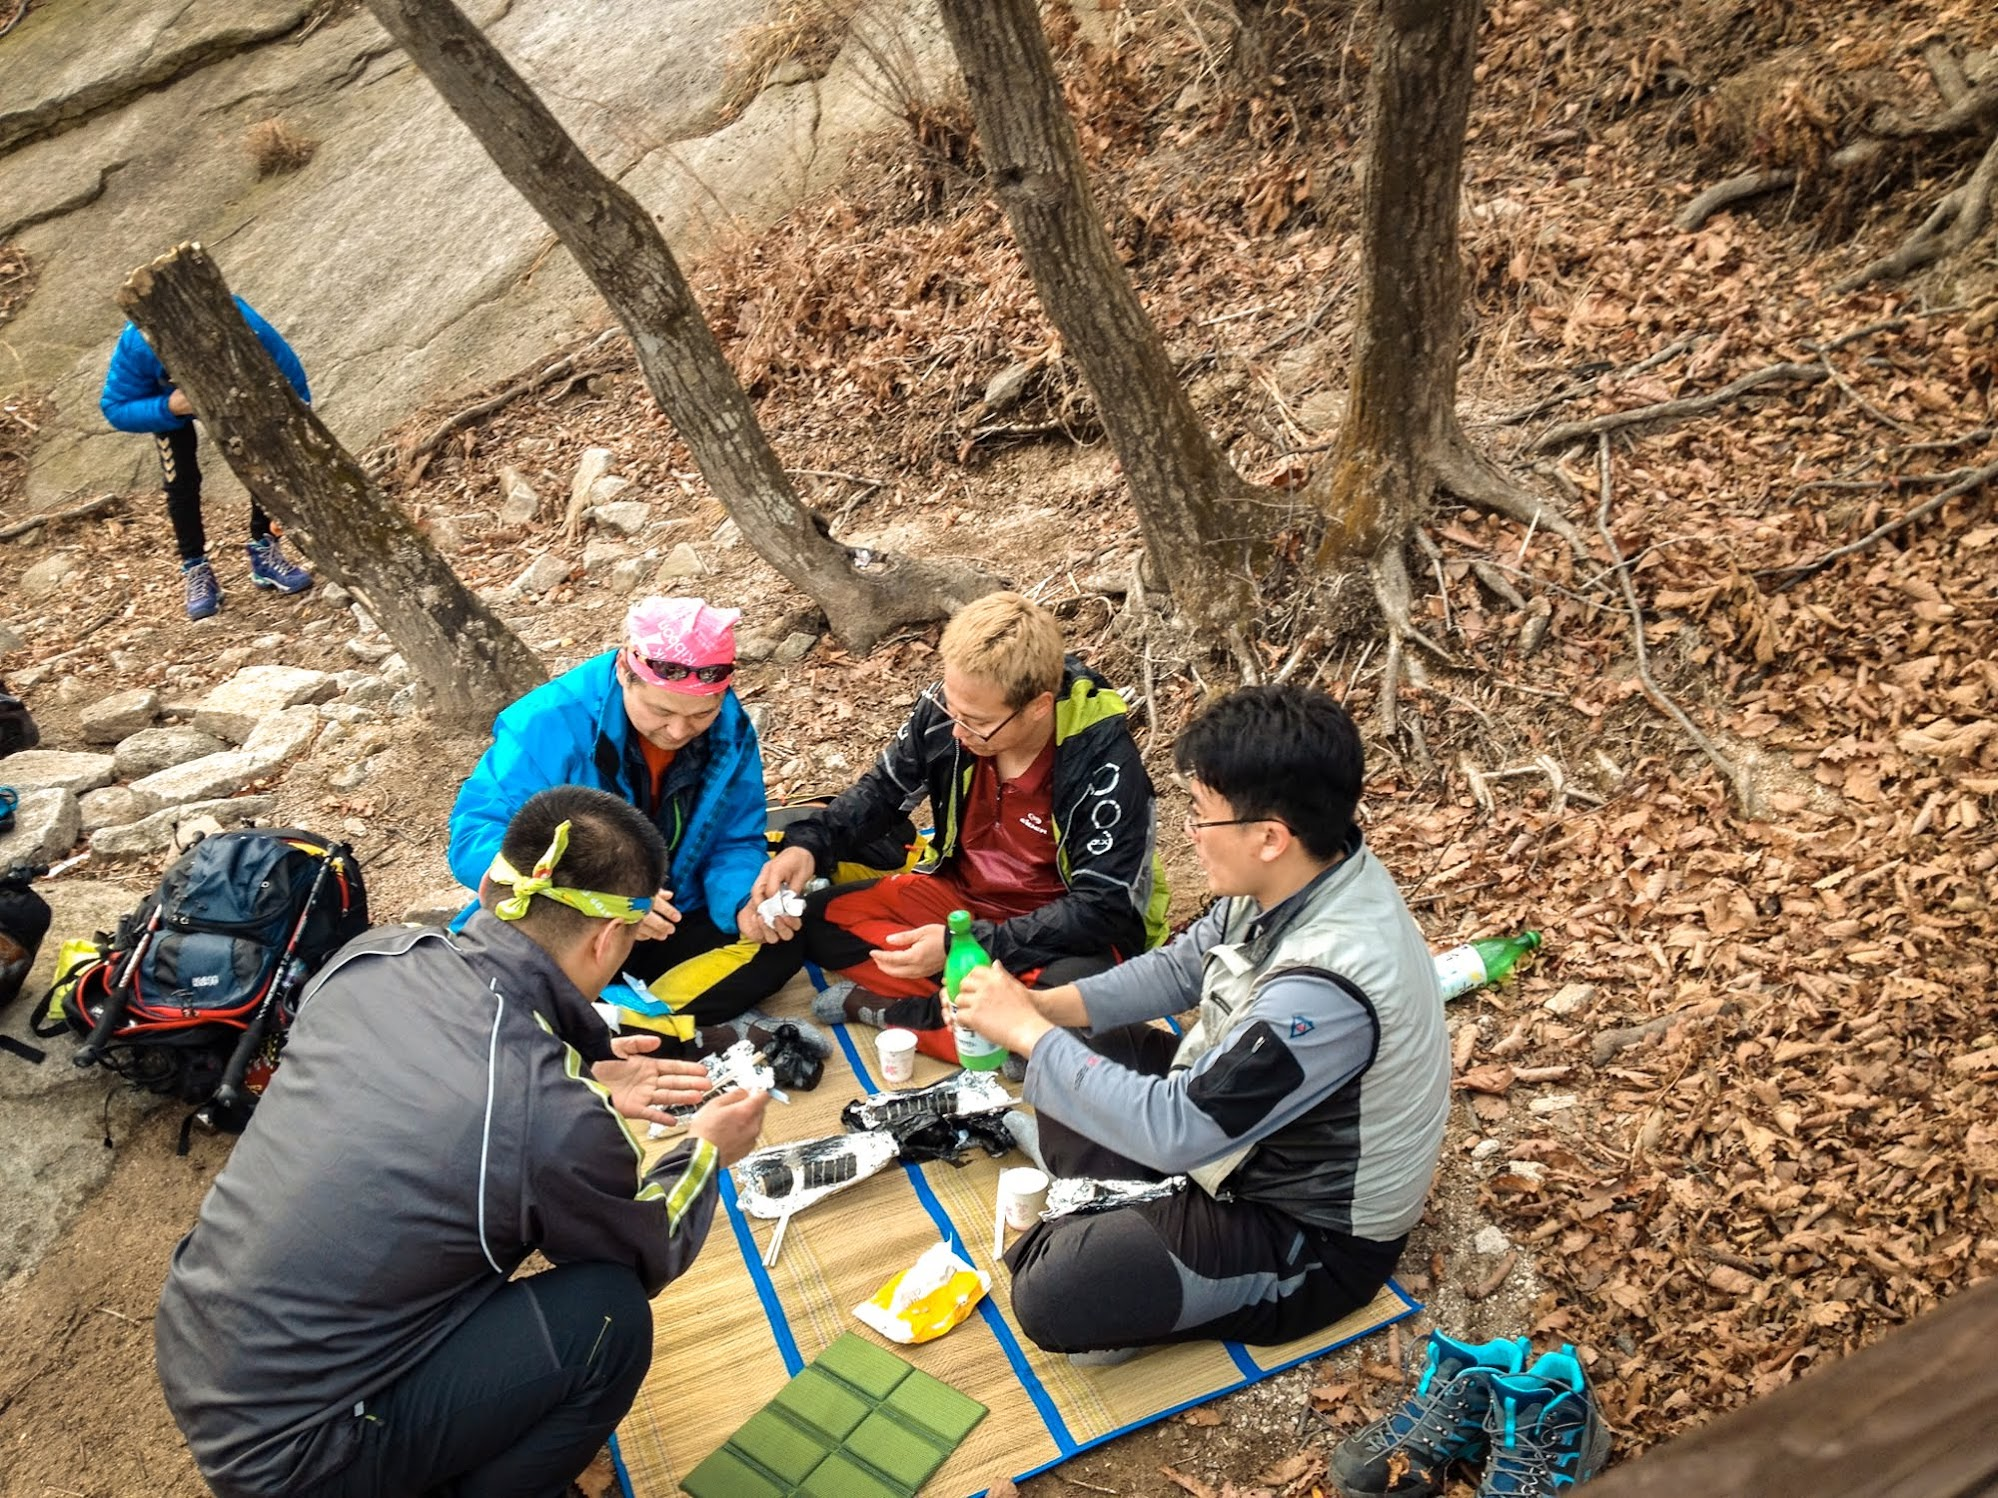 Hiking lunch on Bukhansan Mt, South Korean style, consists of sushi, hot tea, and more.